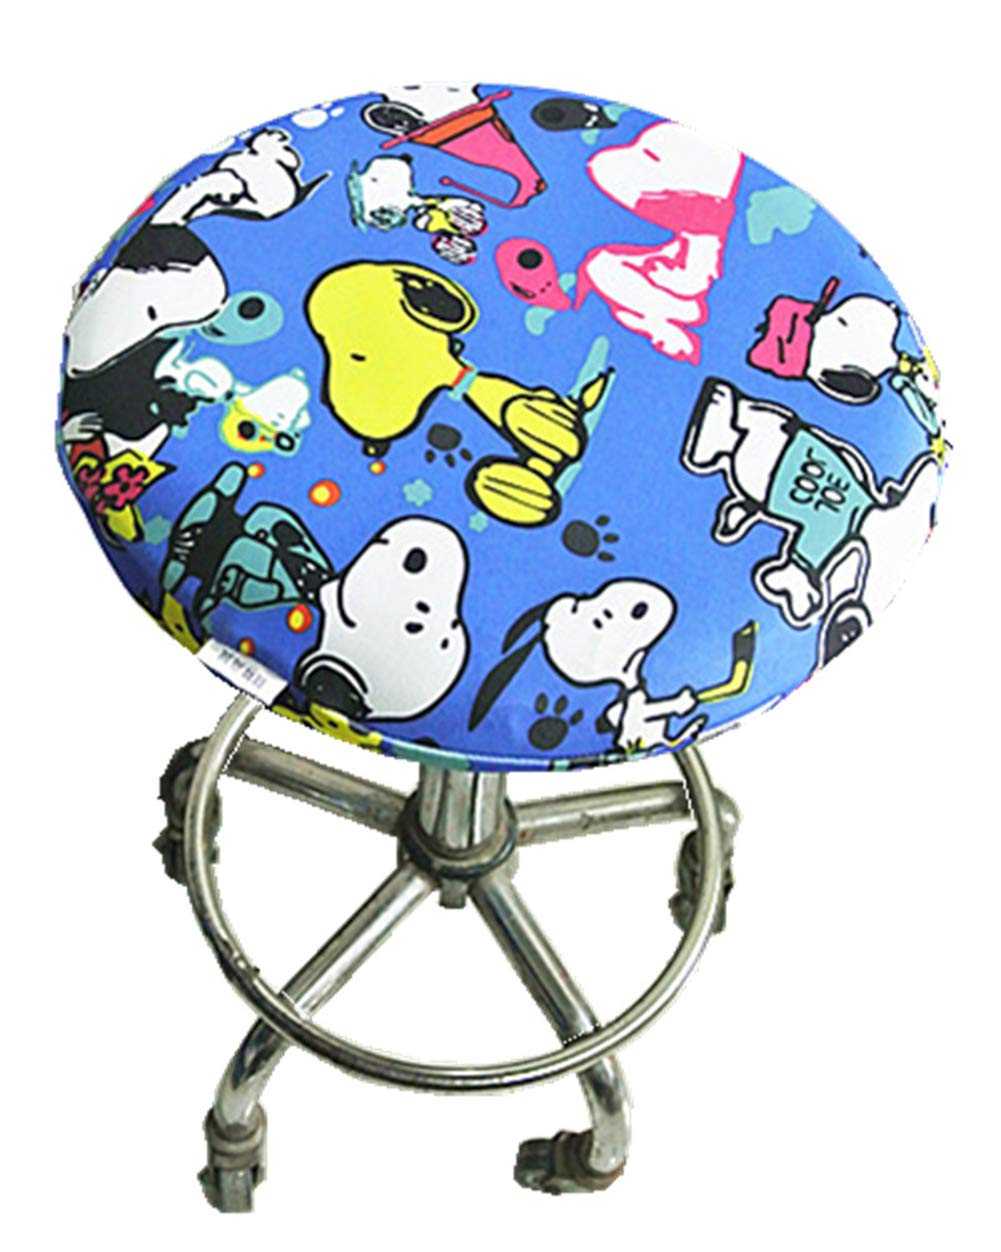 01, 12 Seiyue Soft Bar Stool Cover Elastic Round Cushion Slipcover Chair Seat Cover Protectors 30cm Only Cover,No Stool